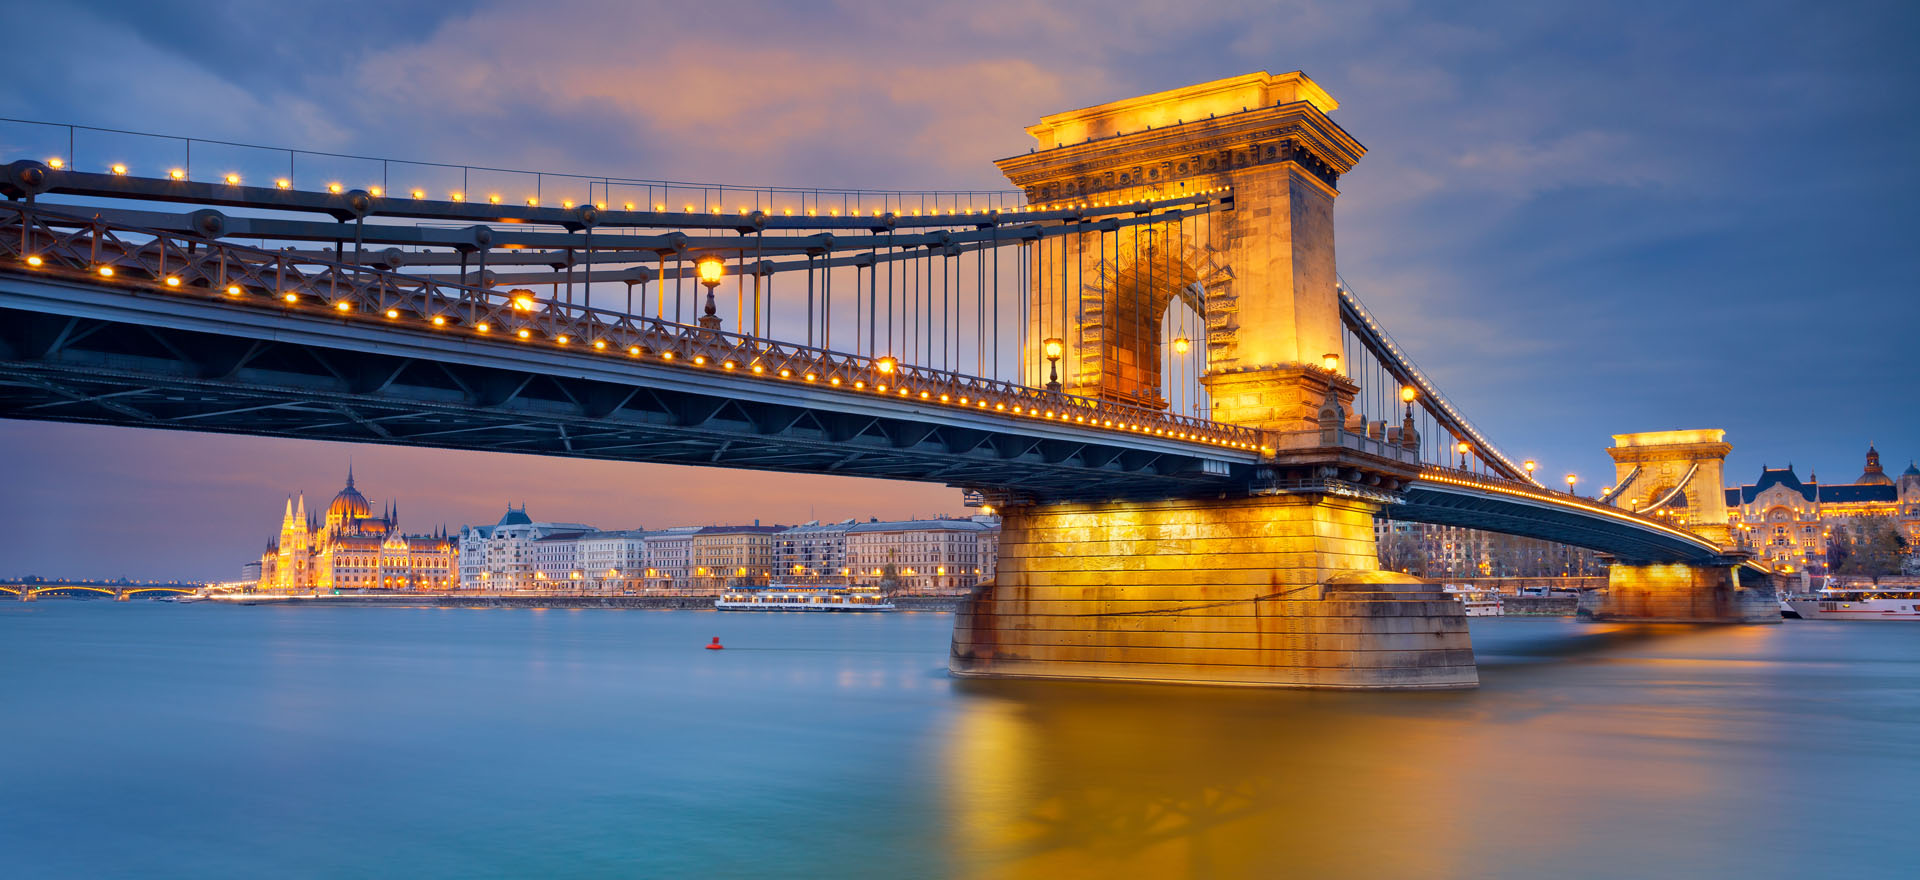 Budapest chain bridge over the Danube river